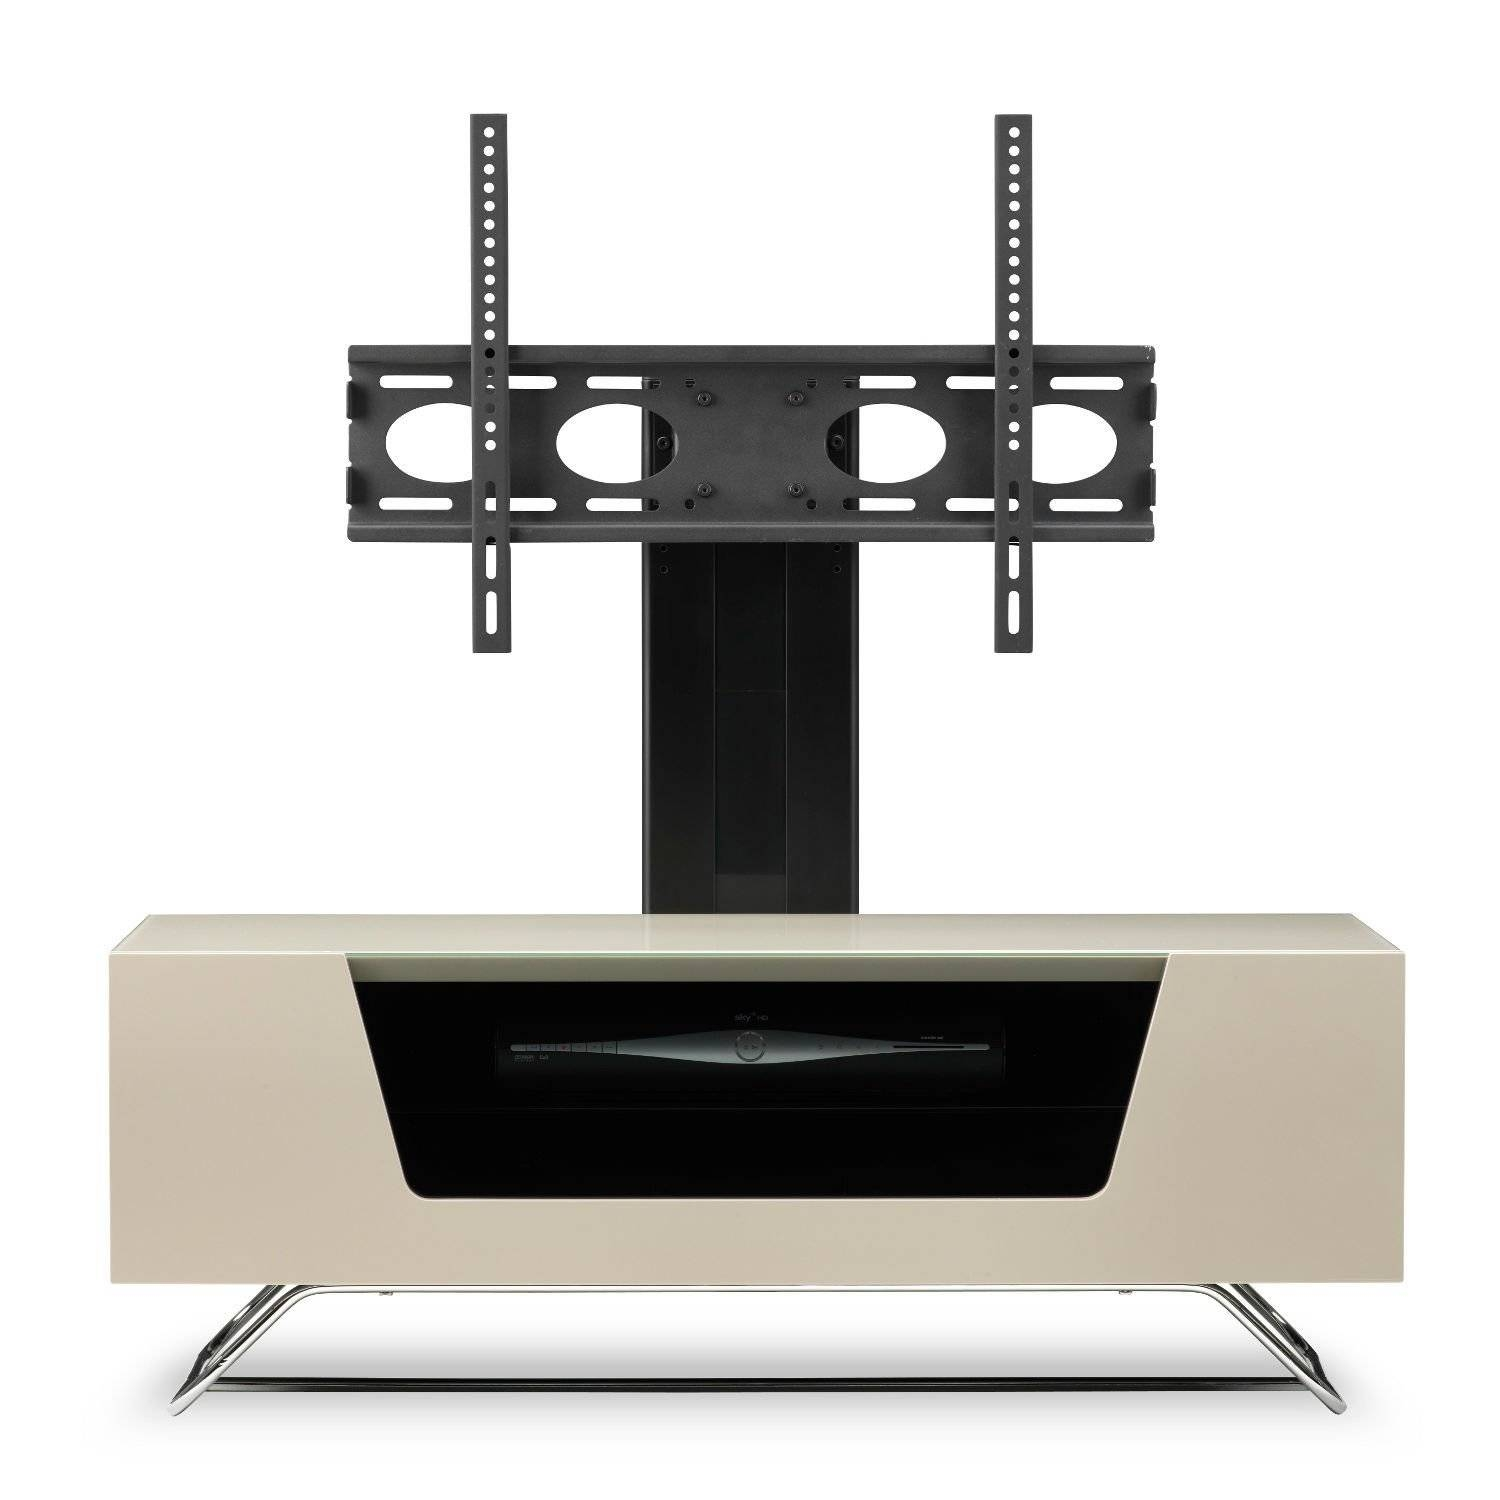 Top 30 Cheapest Cantilever Tv Stand Uk Prices – Best Deals On Storage Within Cheap Cantilever Tv Stands (View 11 of 15)